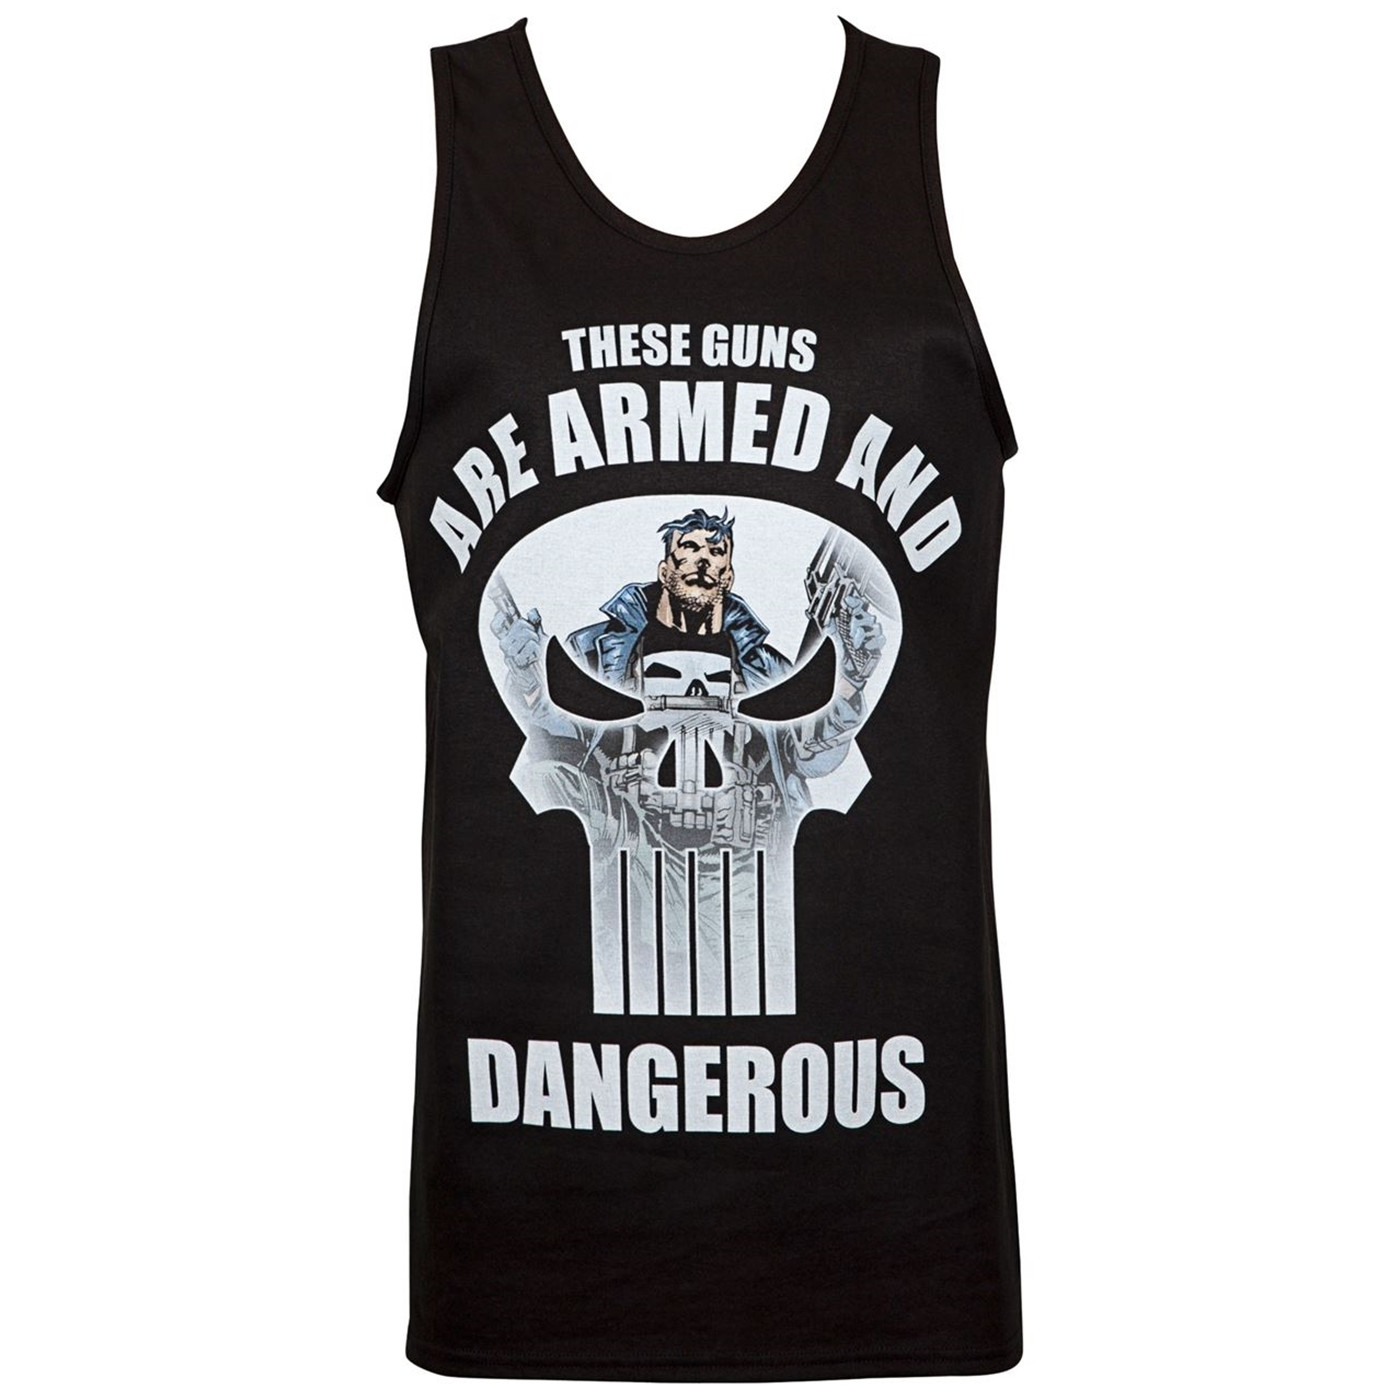 Punisher Guns are Armed and Dangerous Tank Top